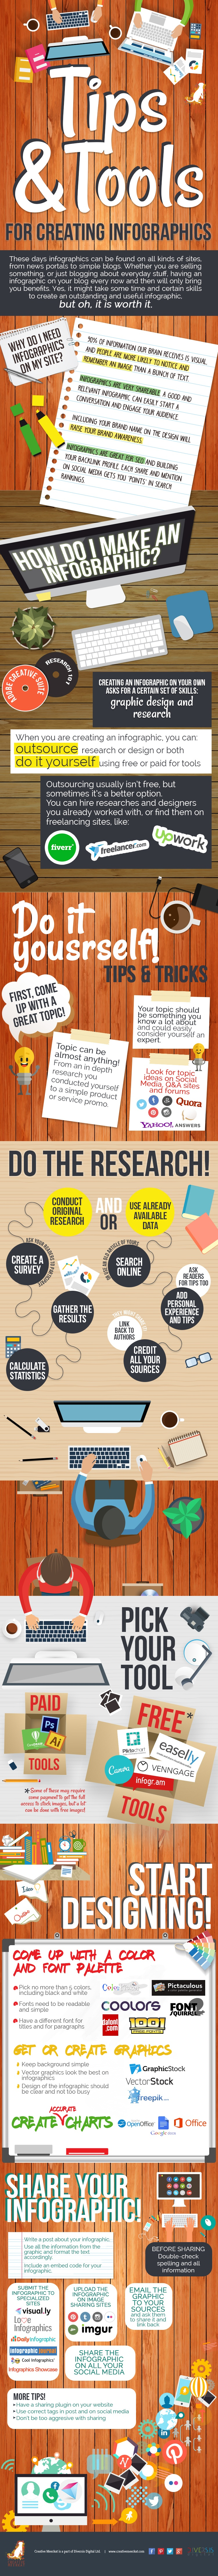 Tips & Tools For Creating Infographics Infographic